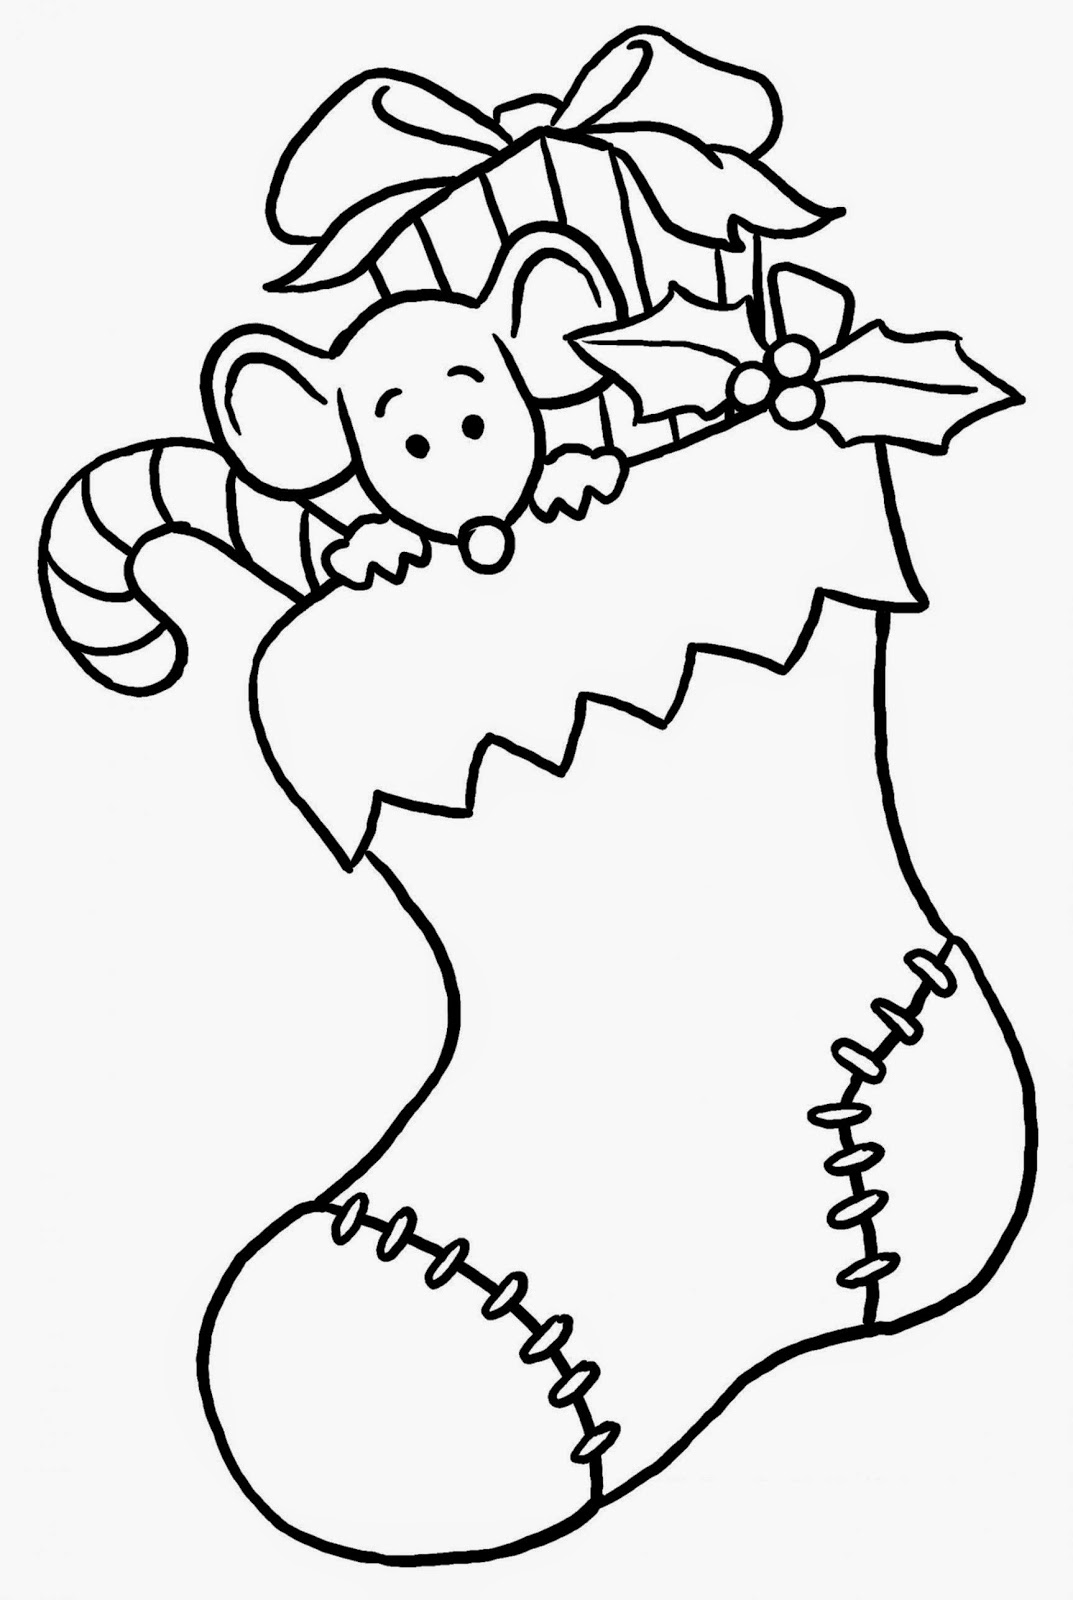 preschool free coloring pages - photo #18